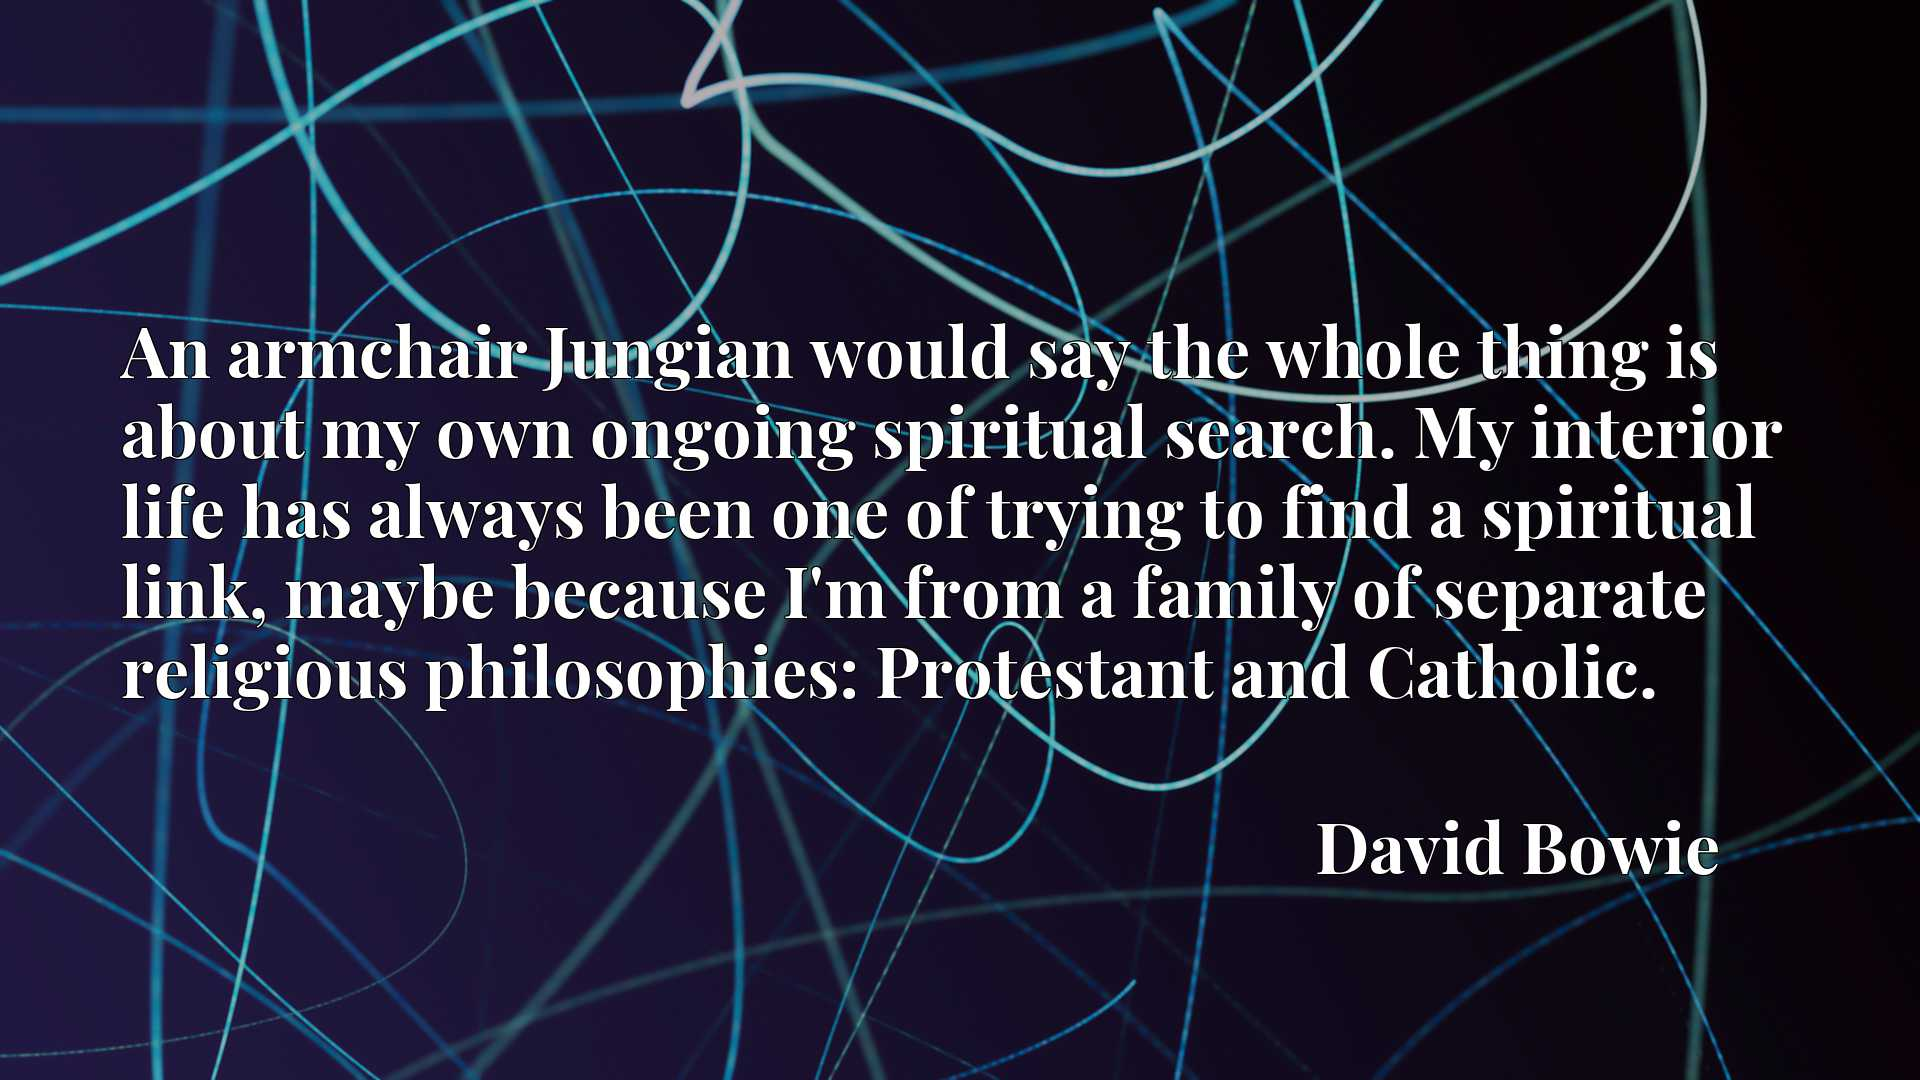 An armchair Jungian would say the whole thing is about my own ongoing spiritual search. My interior life has always been one of trying to find a spiritual link, maybe because I'm from a family of separate religious philosophies: Protestant and Catholic.